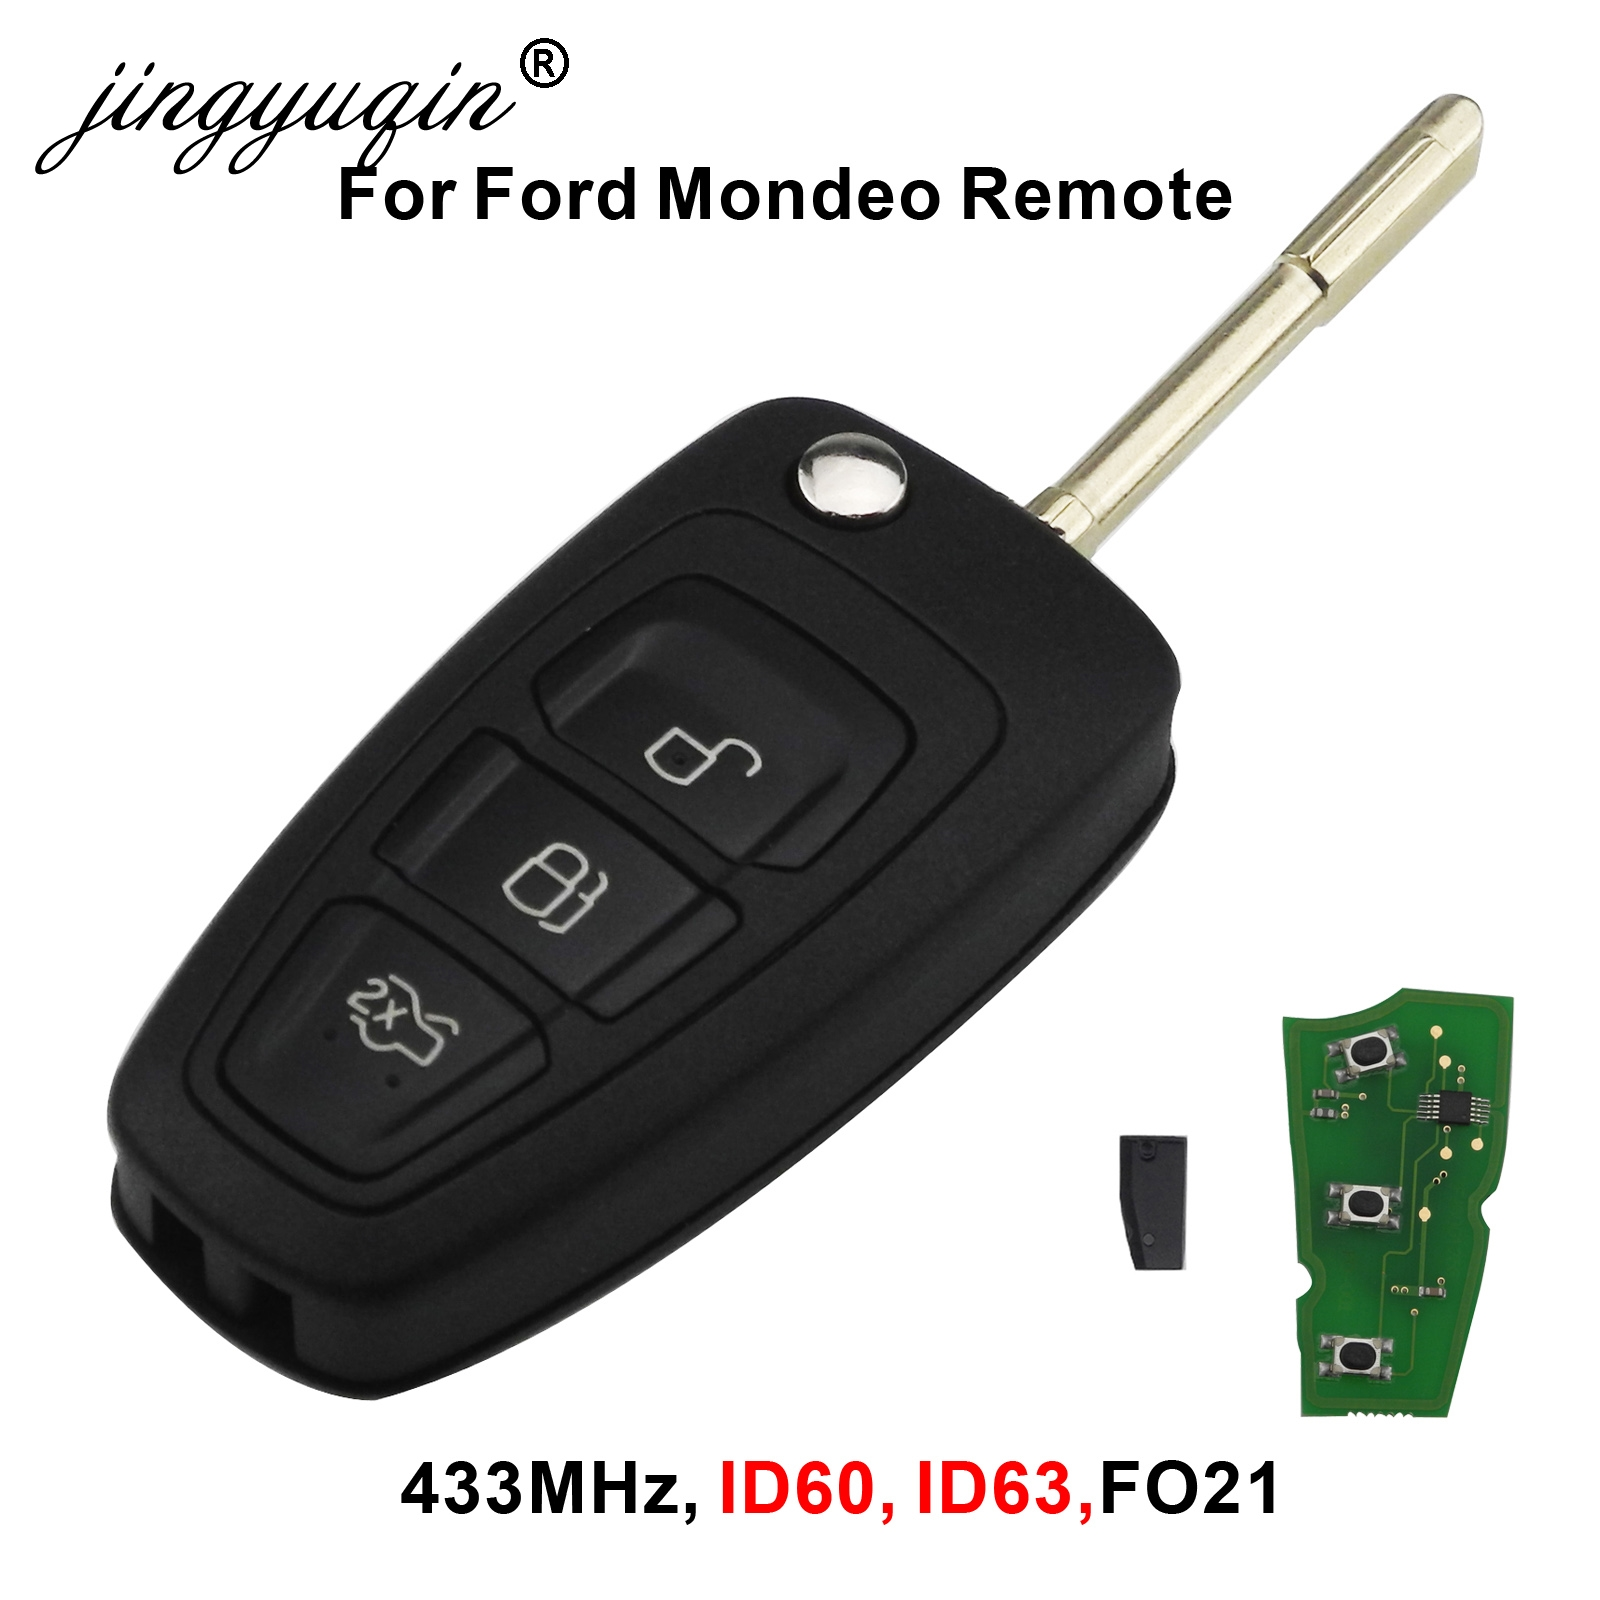 jingyuqin 3 Buttons Flip Remote Key Fob Chip 4D60 ID63 For Ford Focus Mk1 Mondeo Transit Connect 433Mhz-in Car Key from Automobiles & Motorcycles